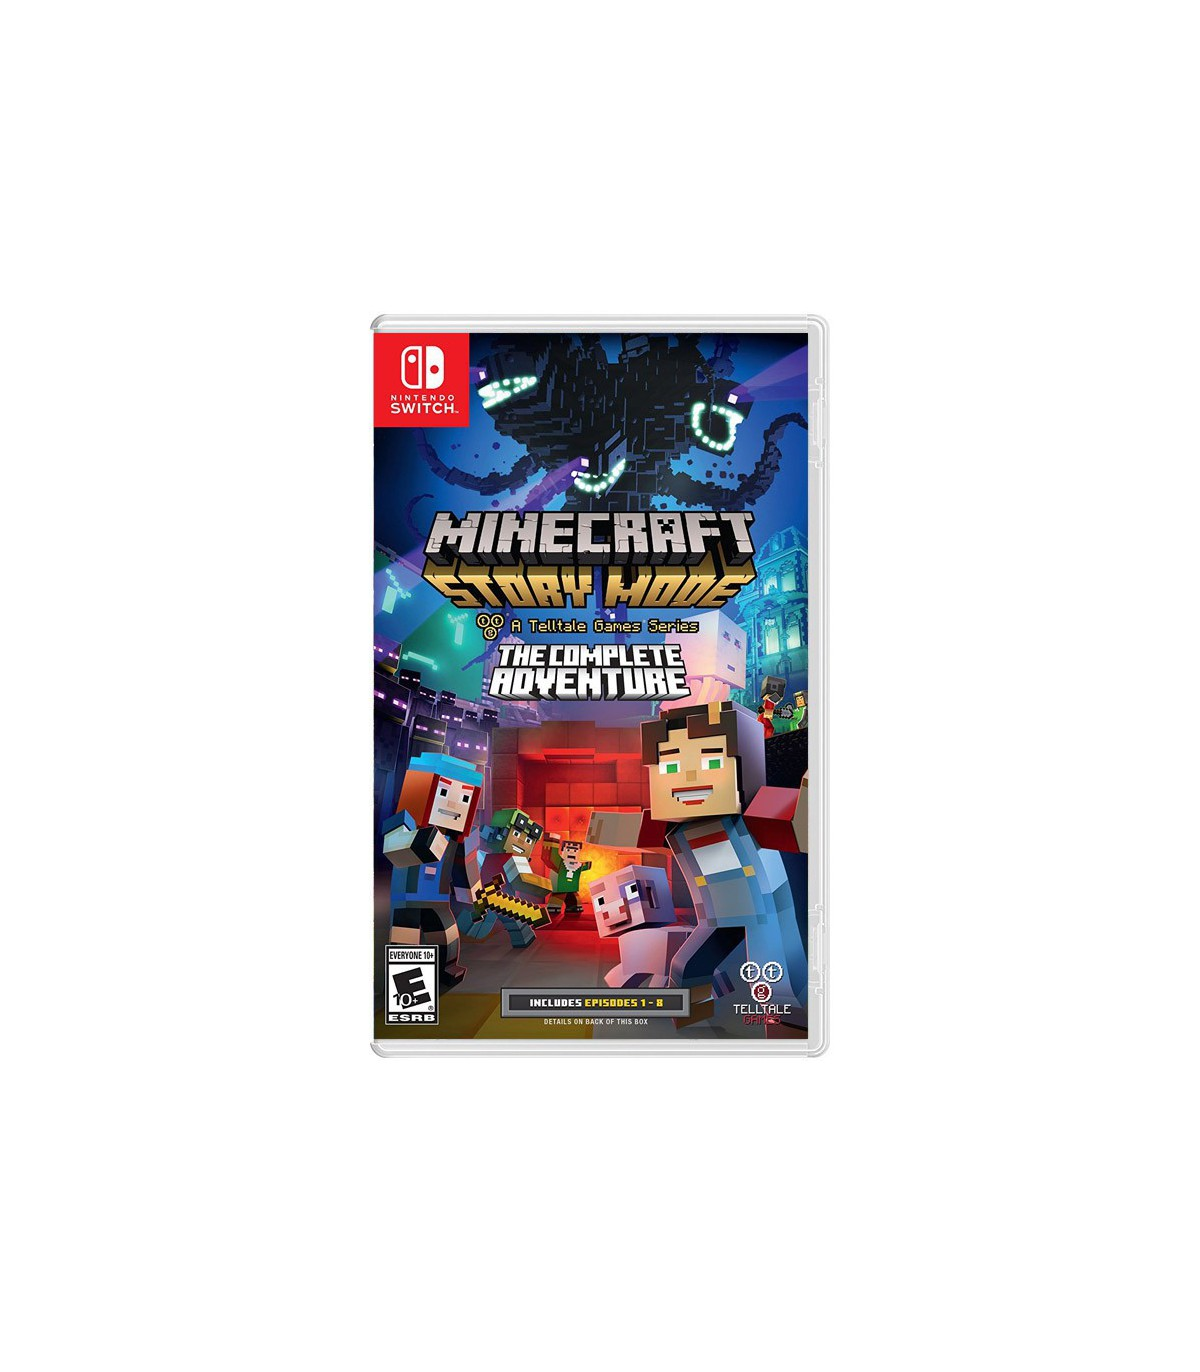 بازی Minecraft: Story Mode - The Complete Adventure - نینتندو سوئیچ